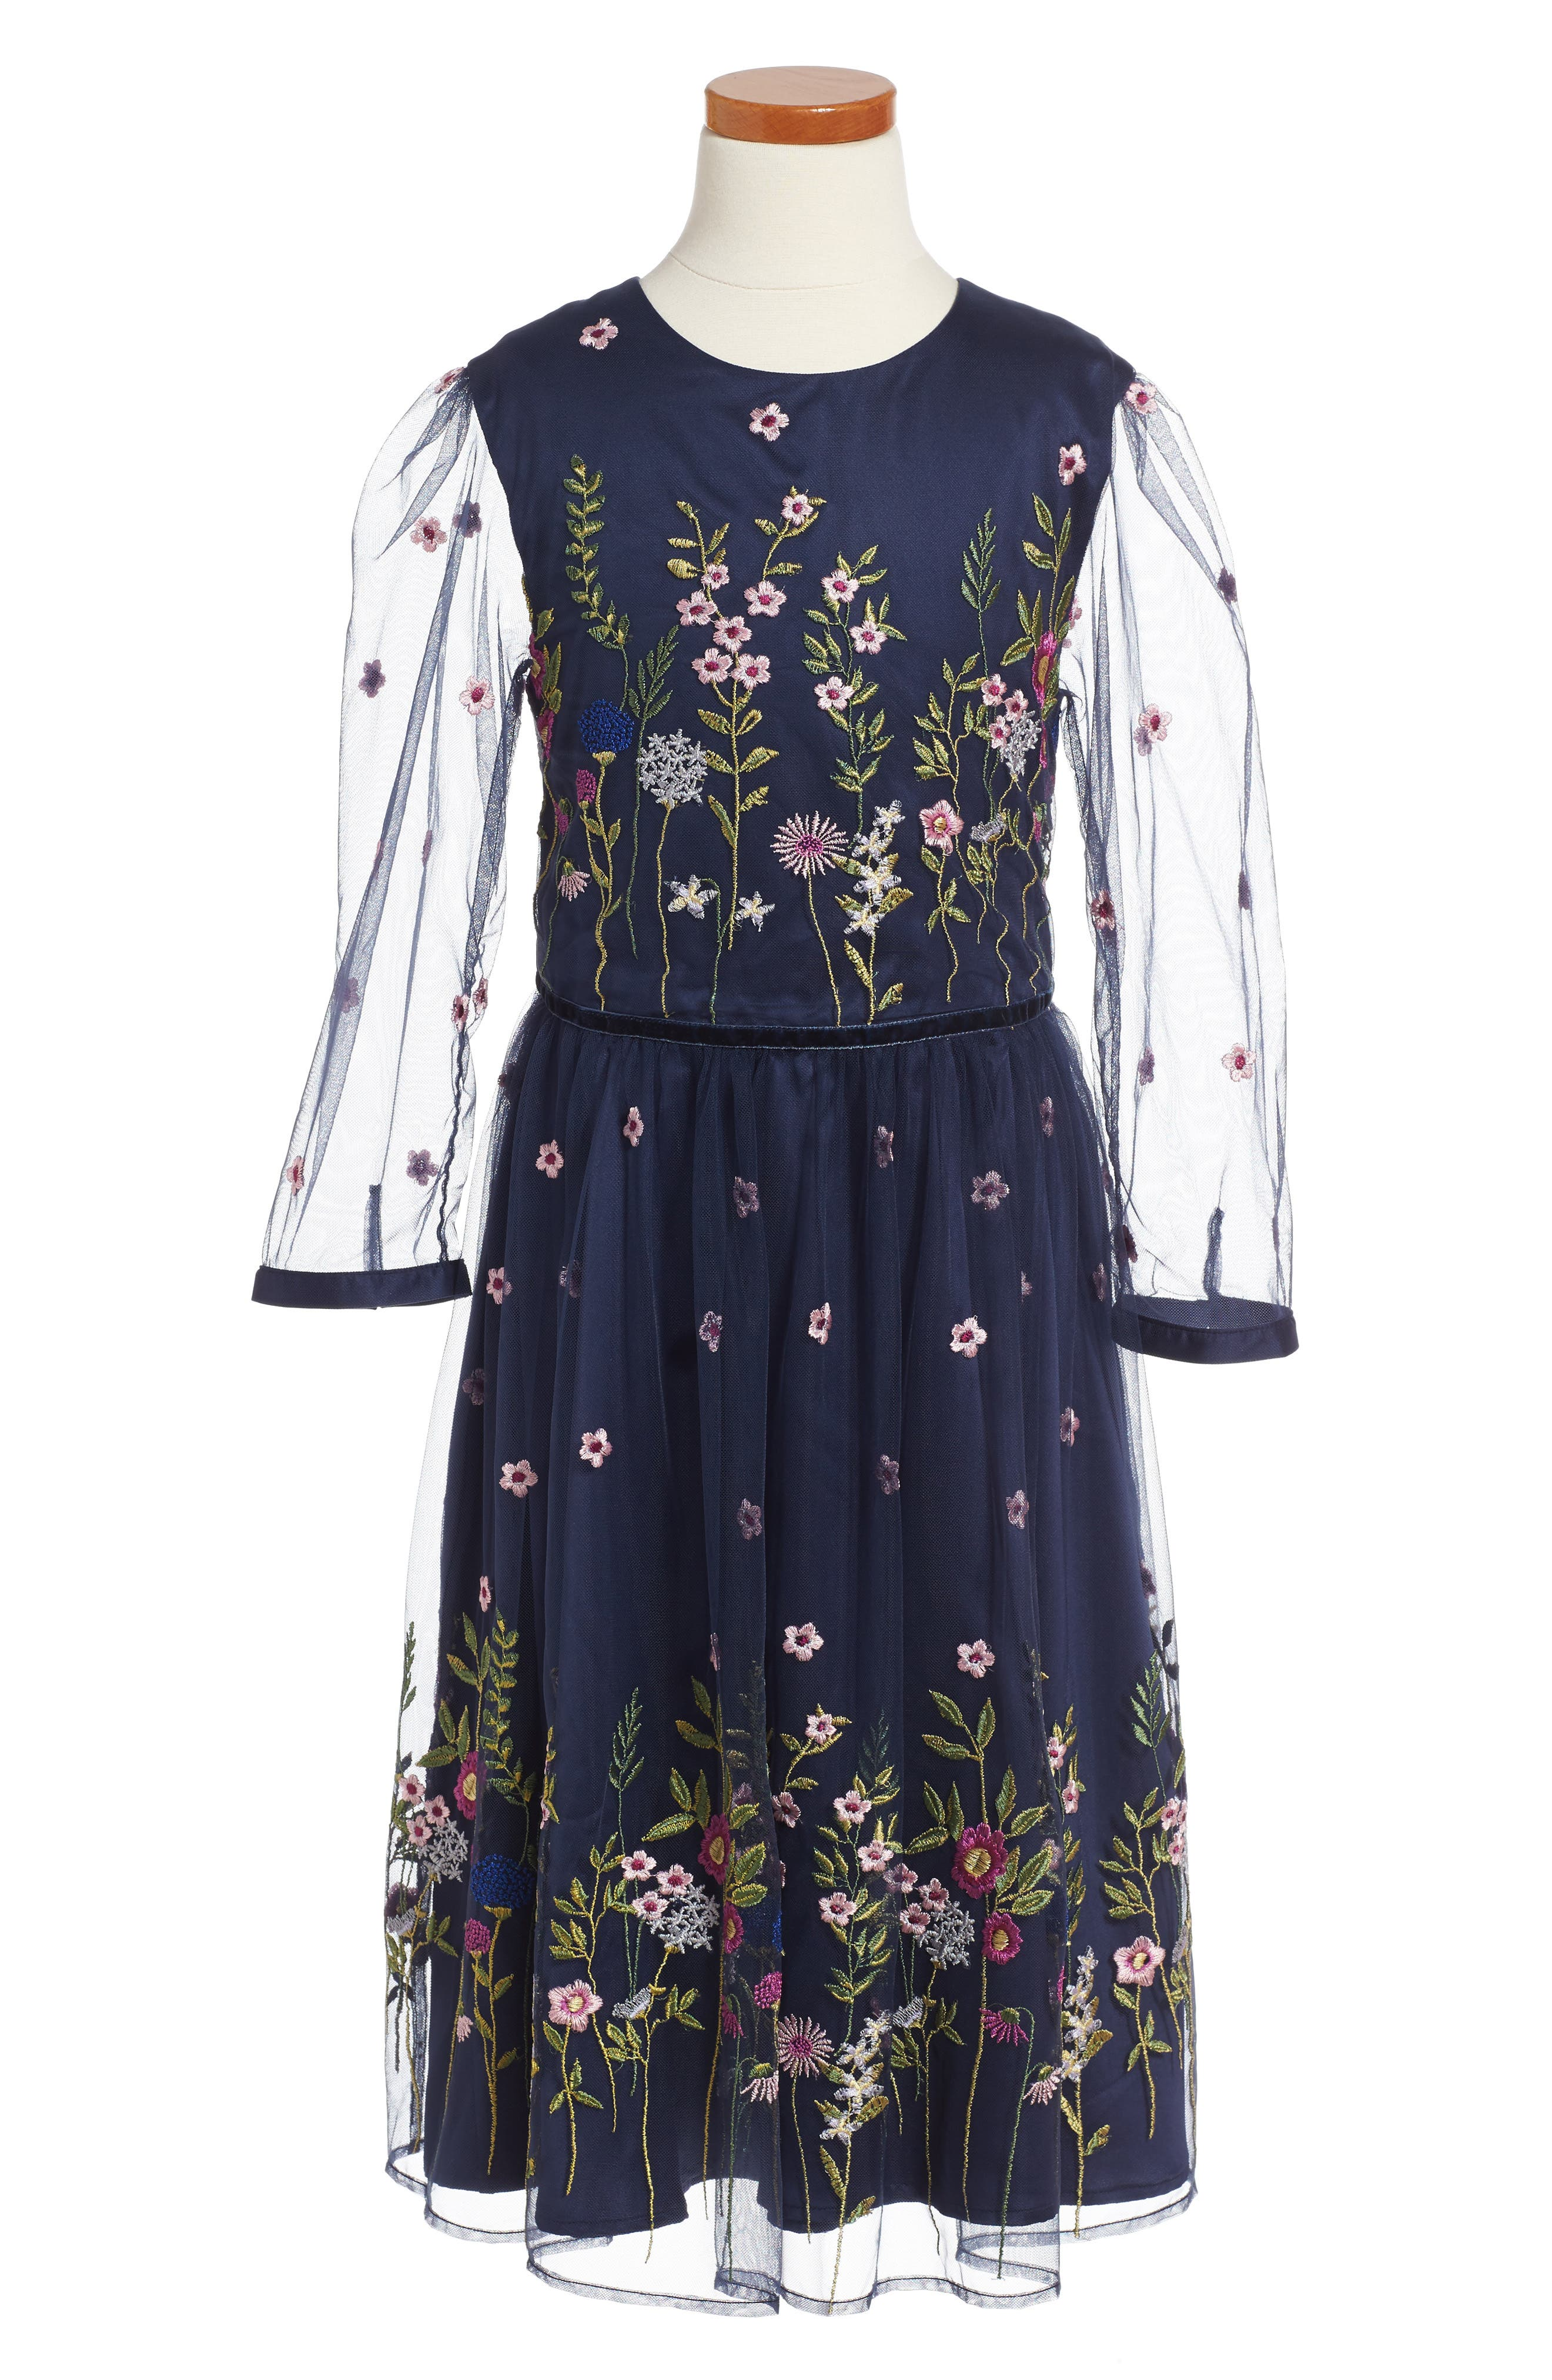 Alternate Image 1 Selected - Oh My Meadow Embroidered Dress (Little Girls & Big Girls)